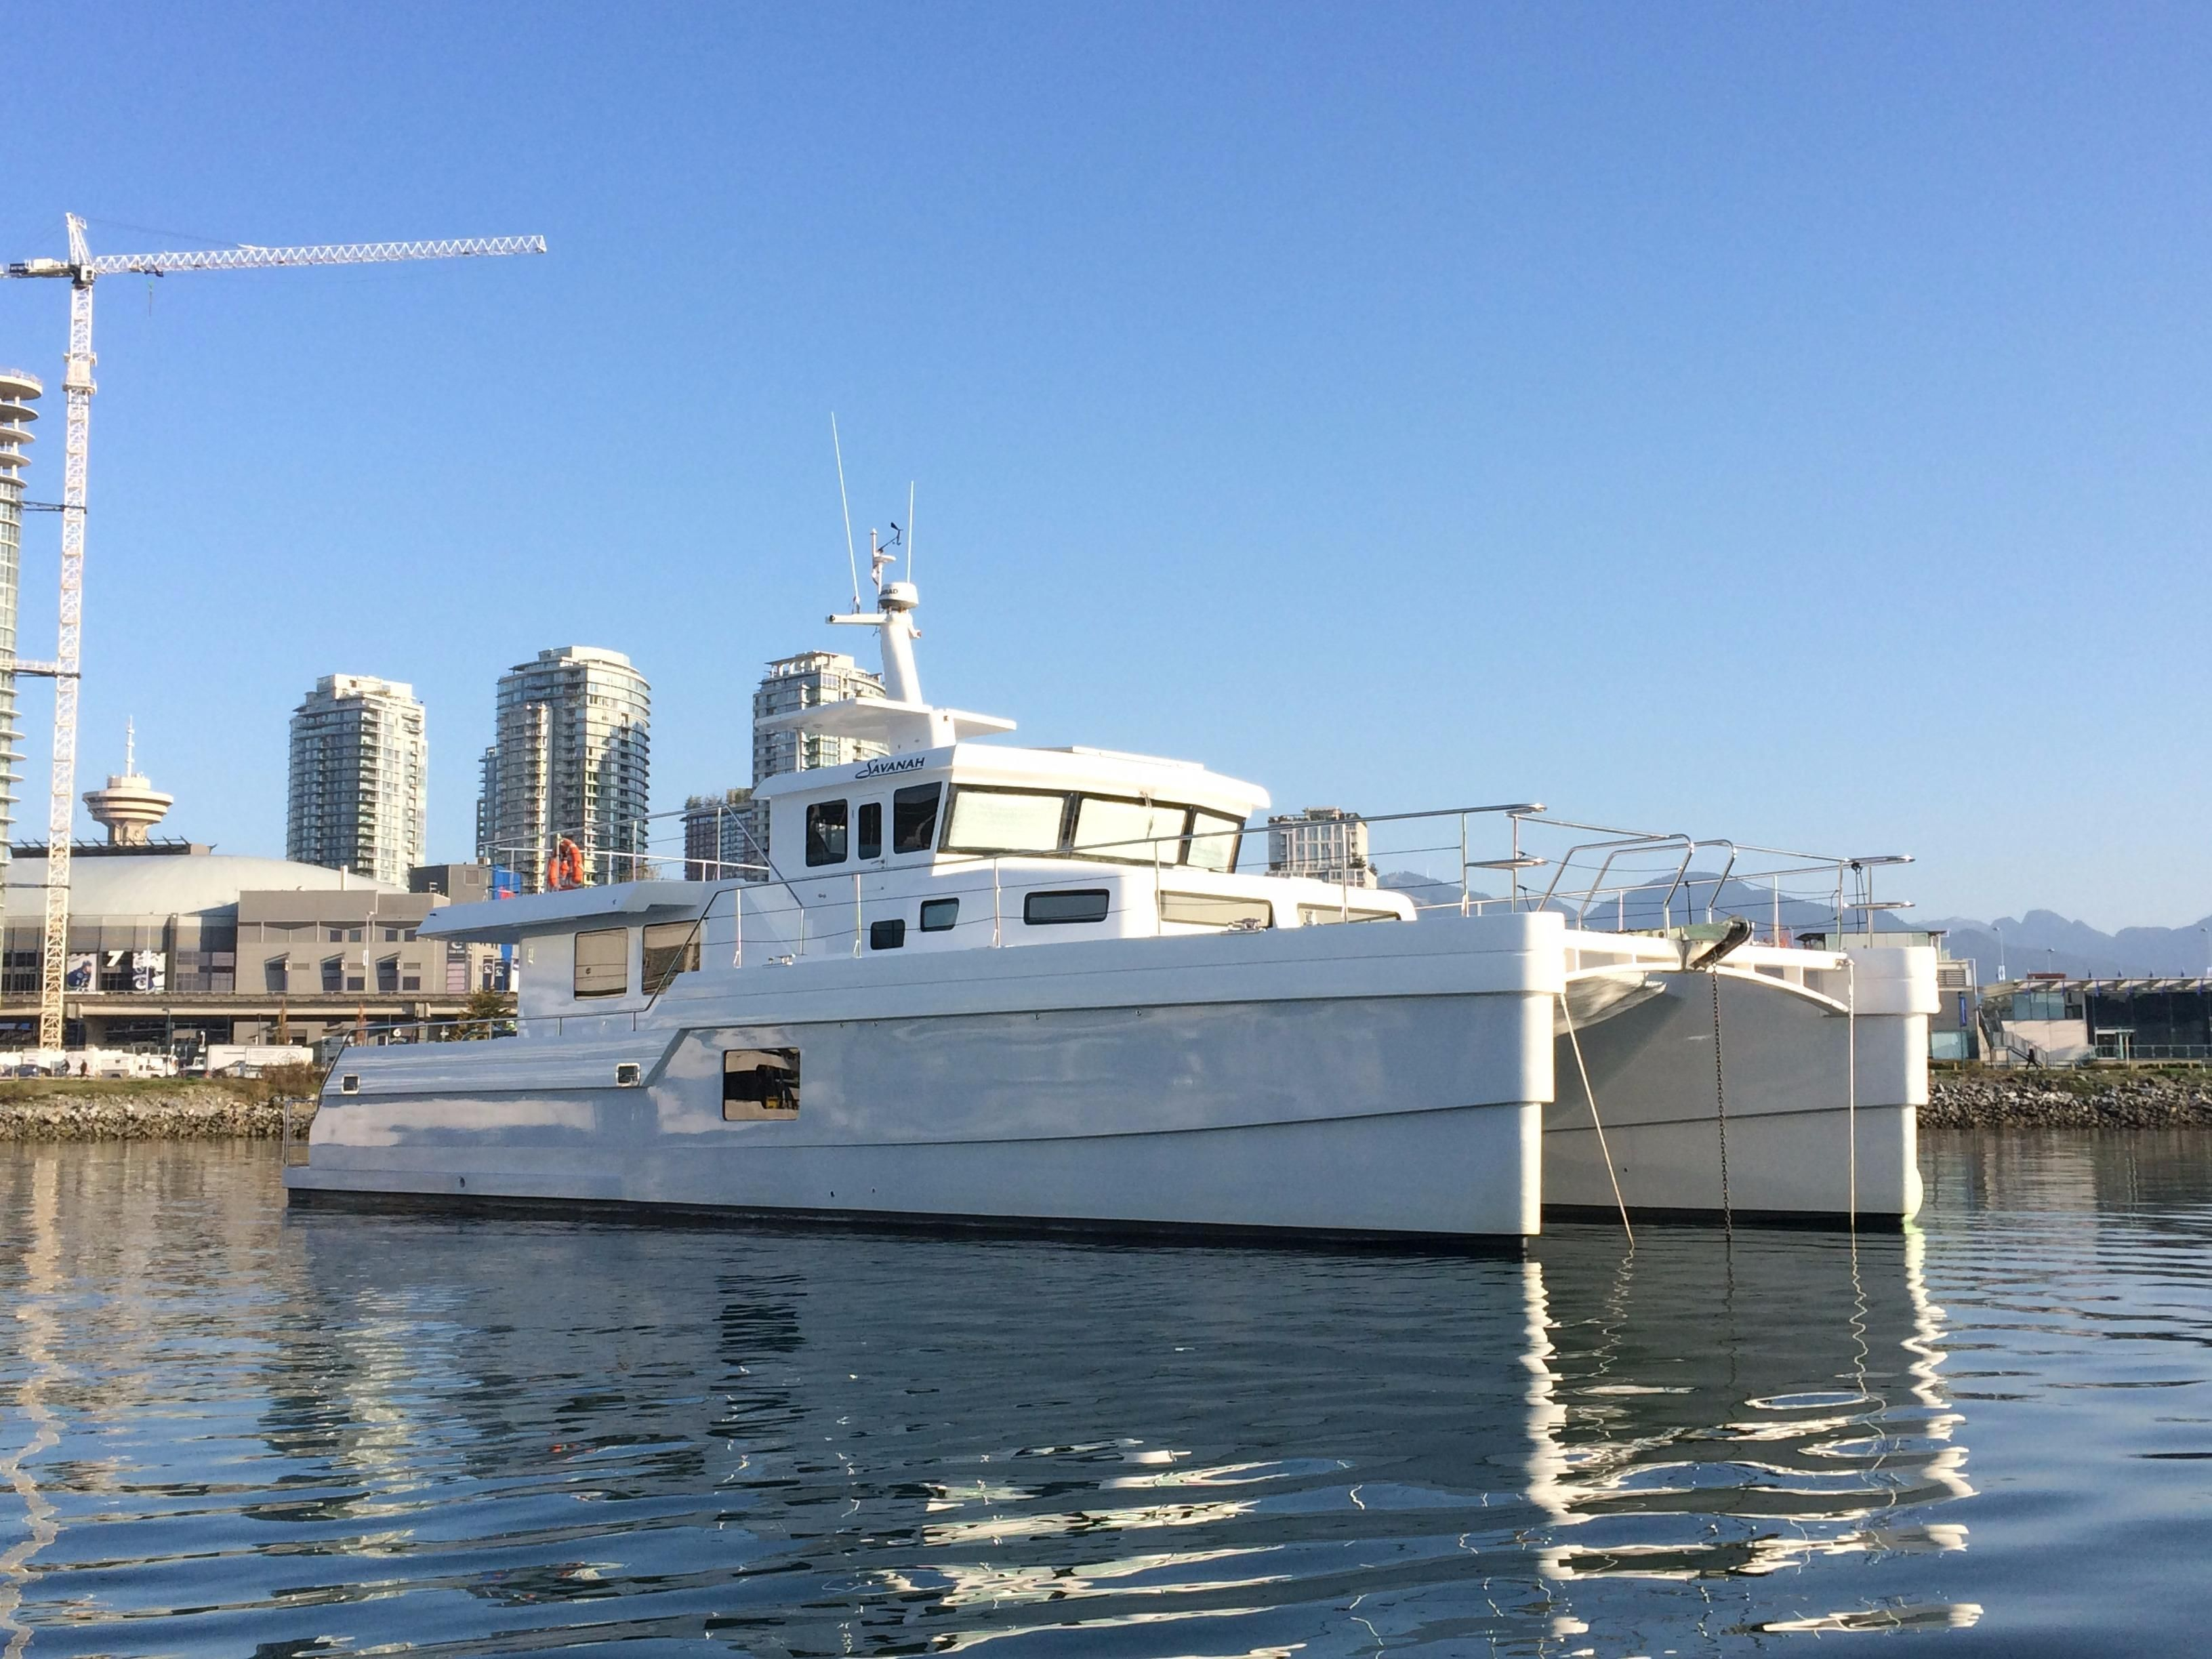 2014 Hys Yachts Lrc Catamaran Trawler Power Boat For Sale Www Yachtworld Com